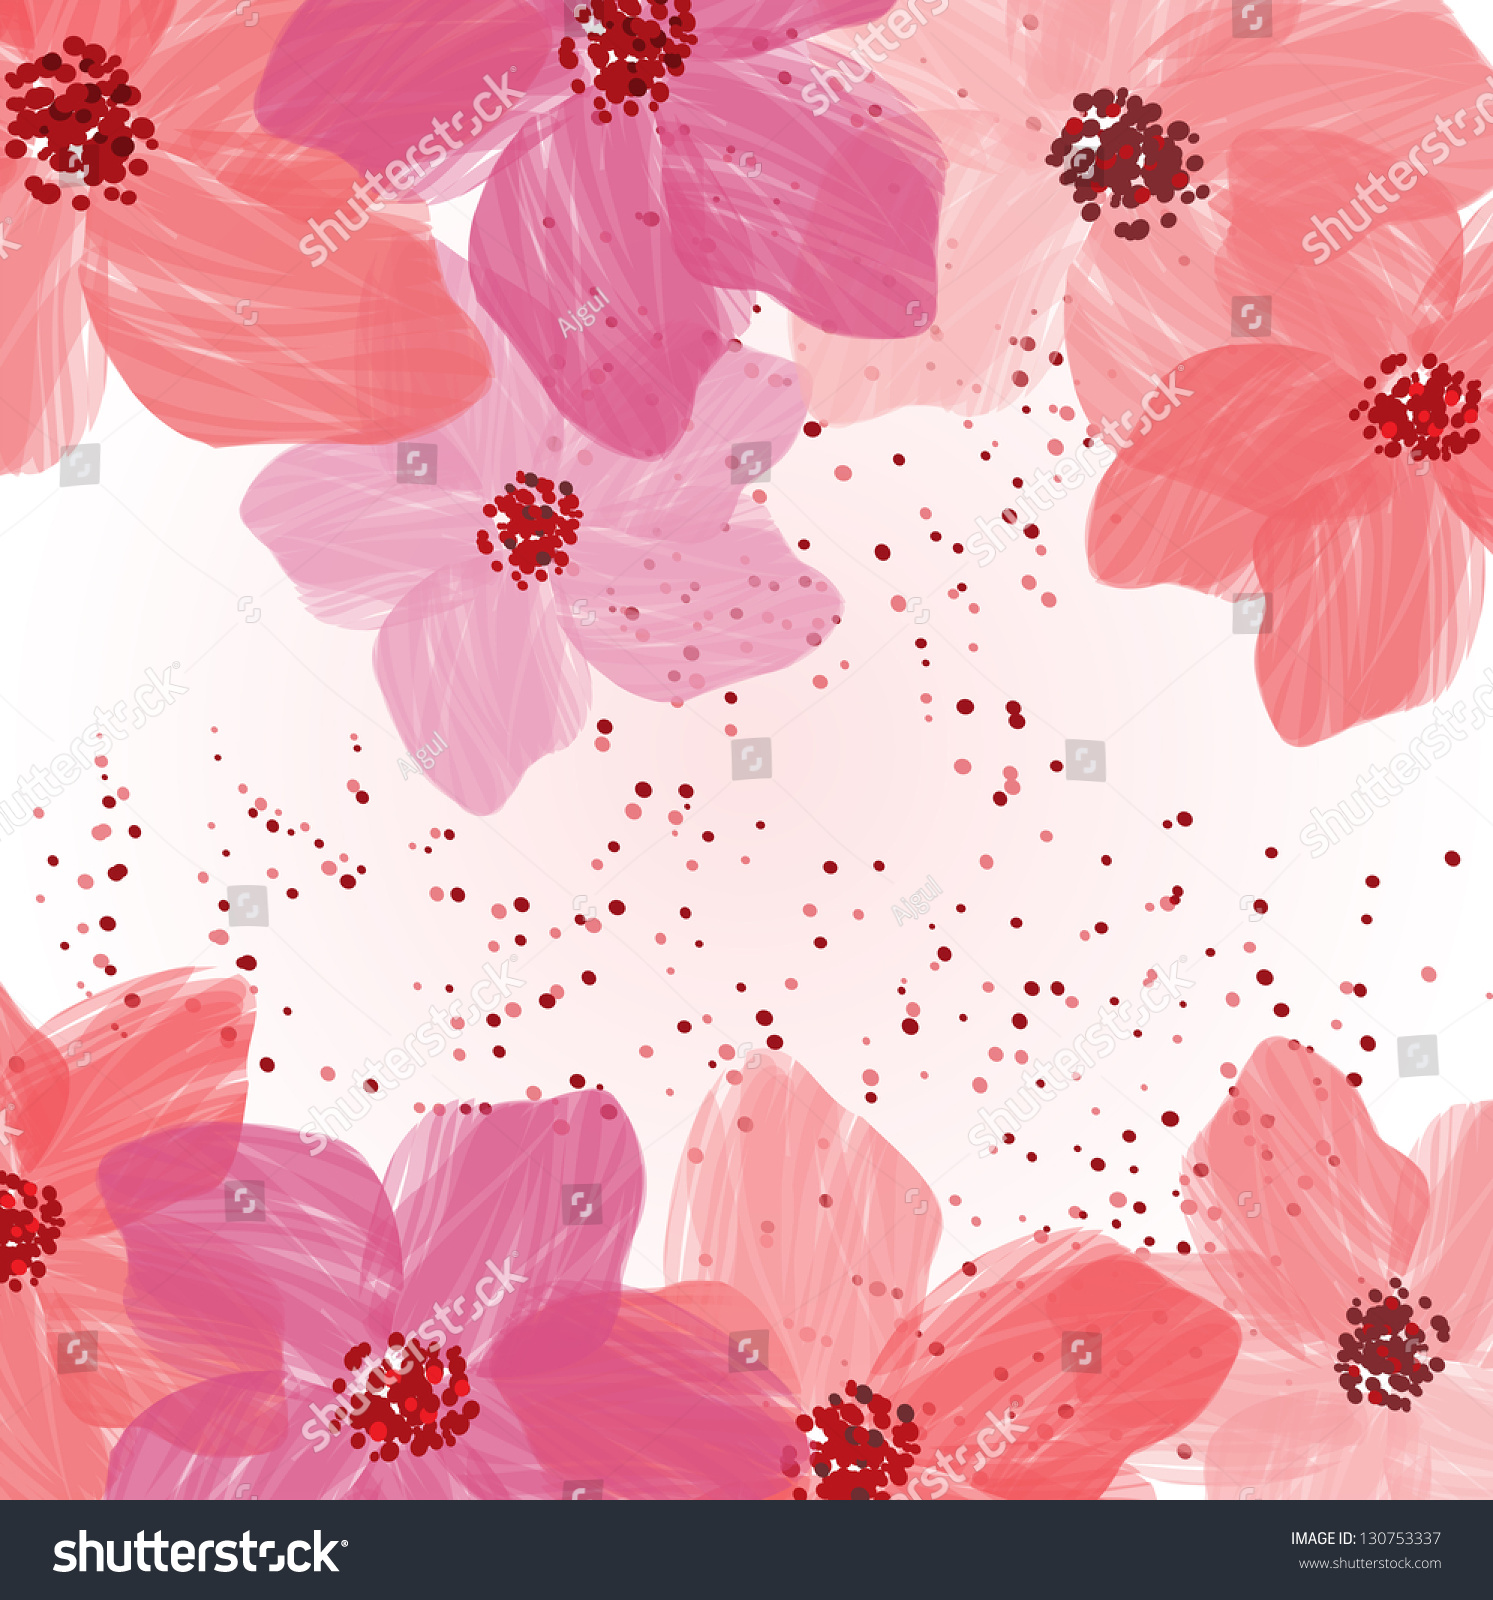 Stylized Pink Flowers Abstract Floral Background Stock Vector